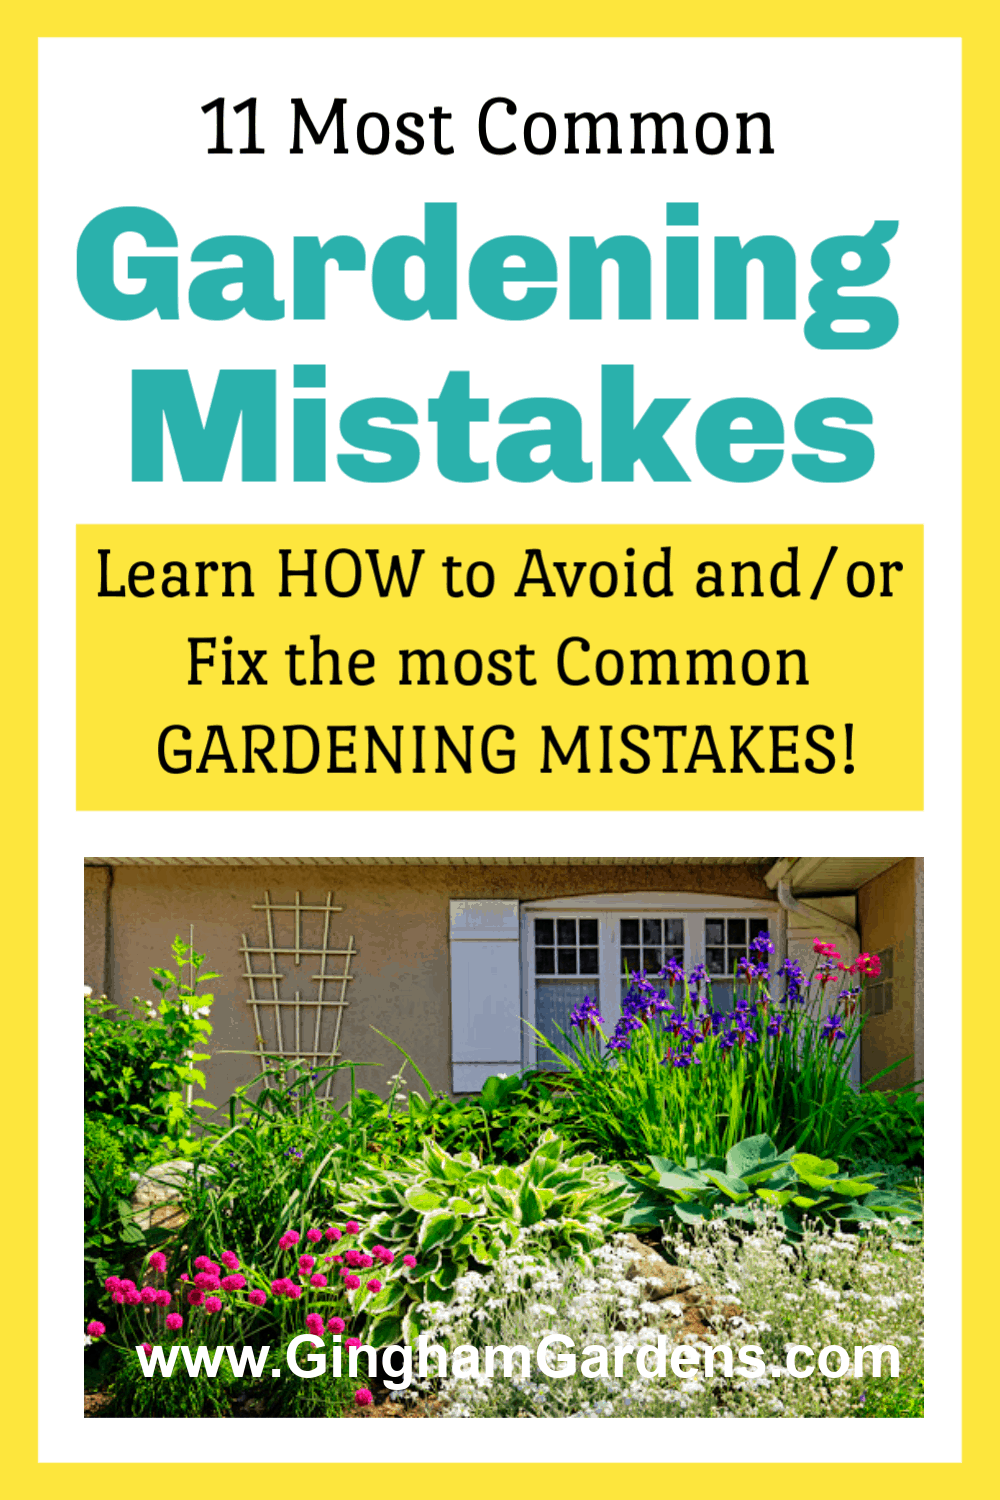 Flower Garden with Text Overlay - 11 Most Common Gardening Mistakes